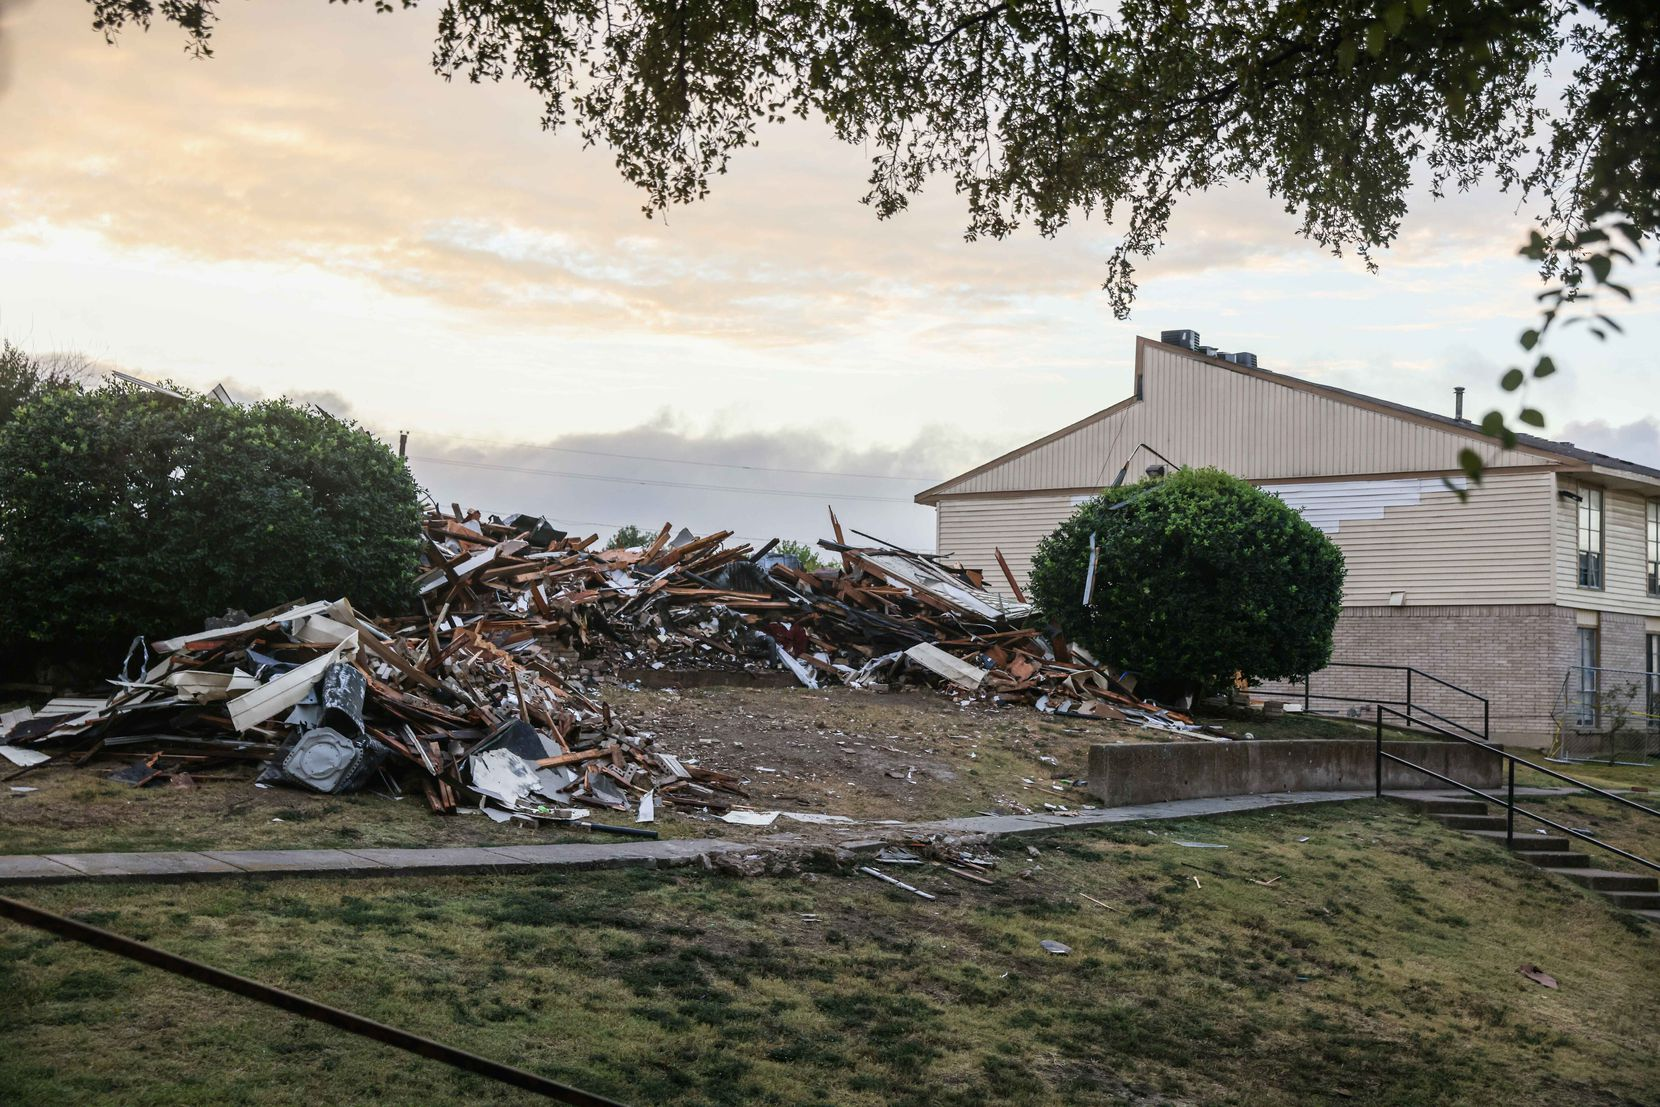 Rubble from Wednesday's explosion at the Highland Hills Apartments and the subsequent razing of the building that blew up has been heaped into piles at the complex.